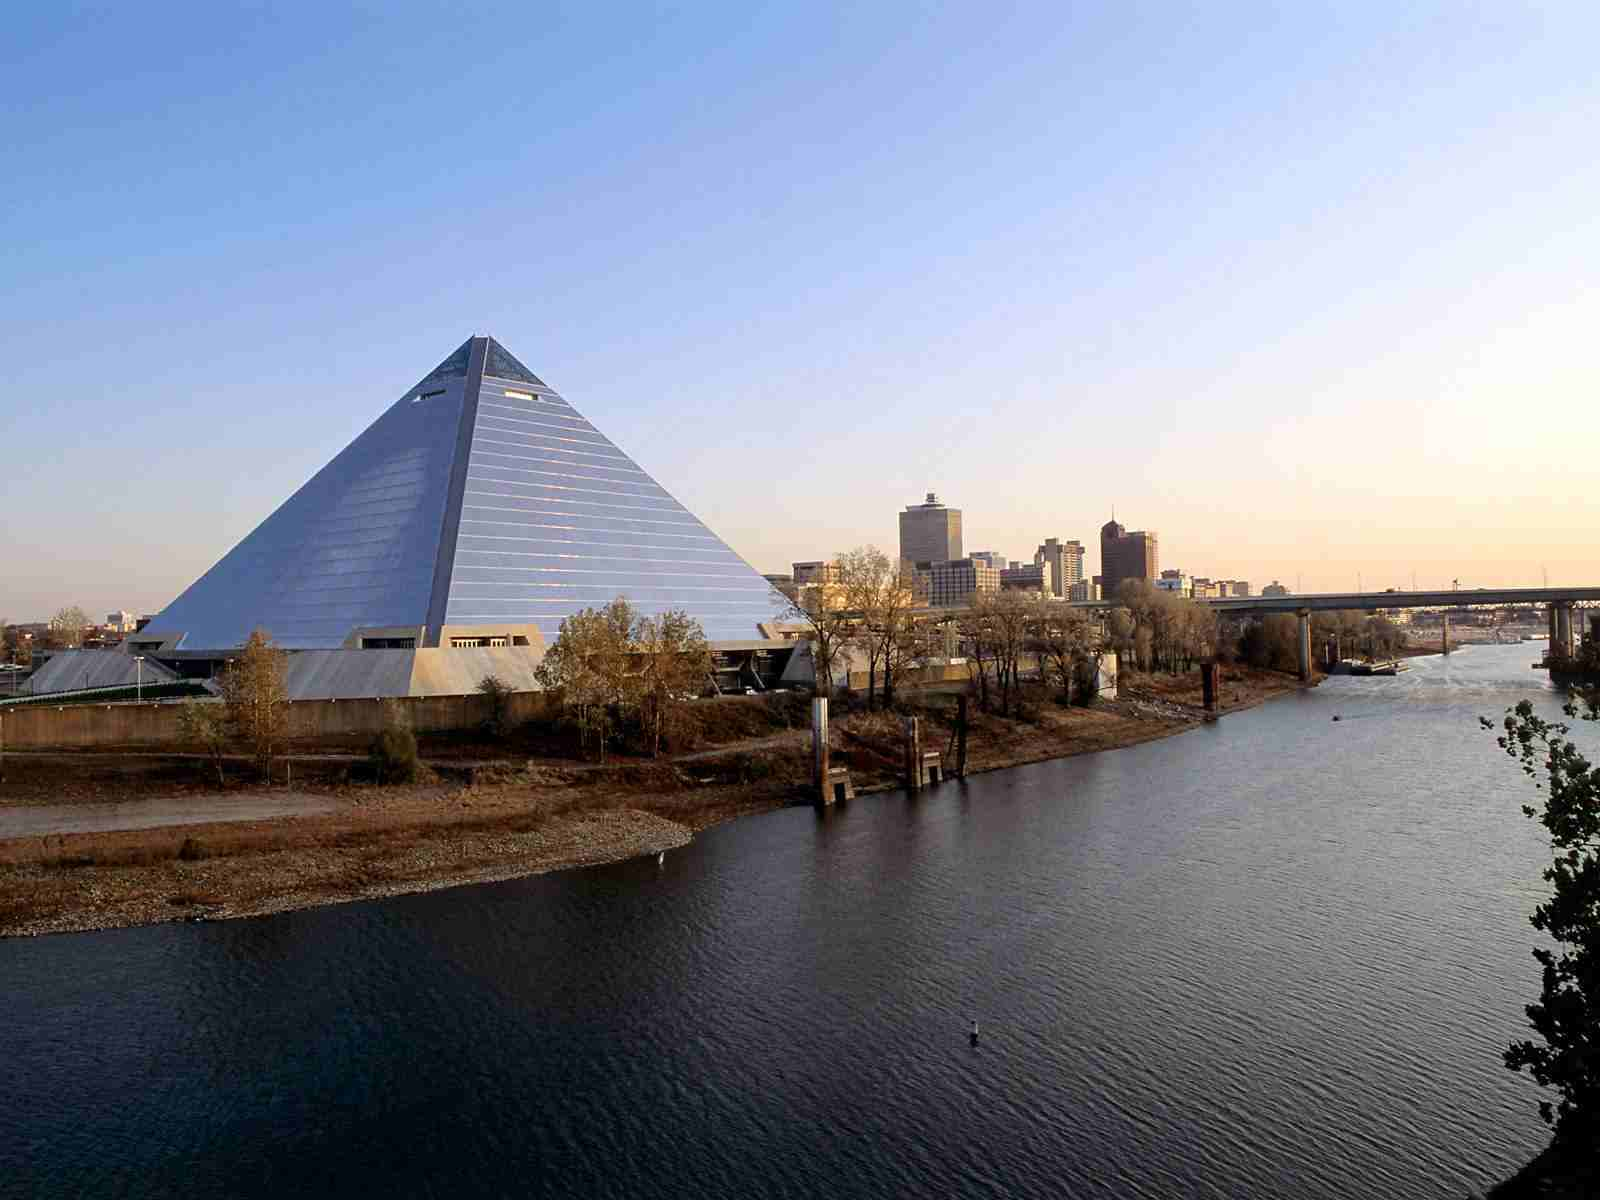 House Building Program Born And Raised In The South Memphis Pyramid The Tomb